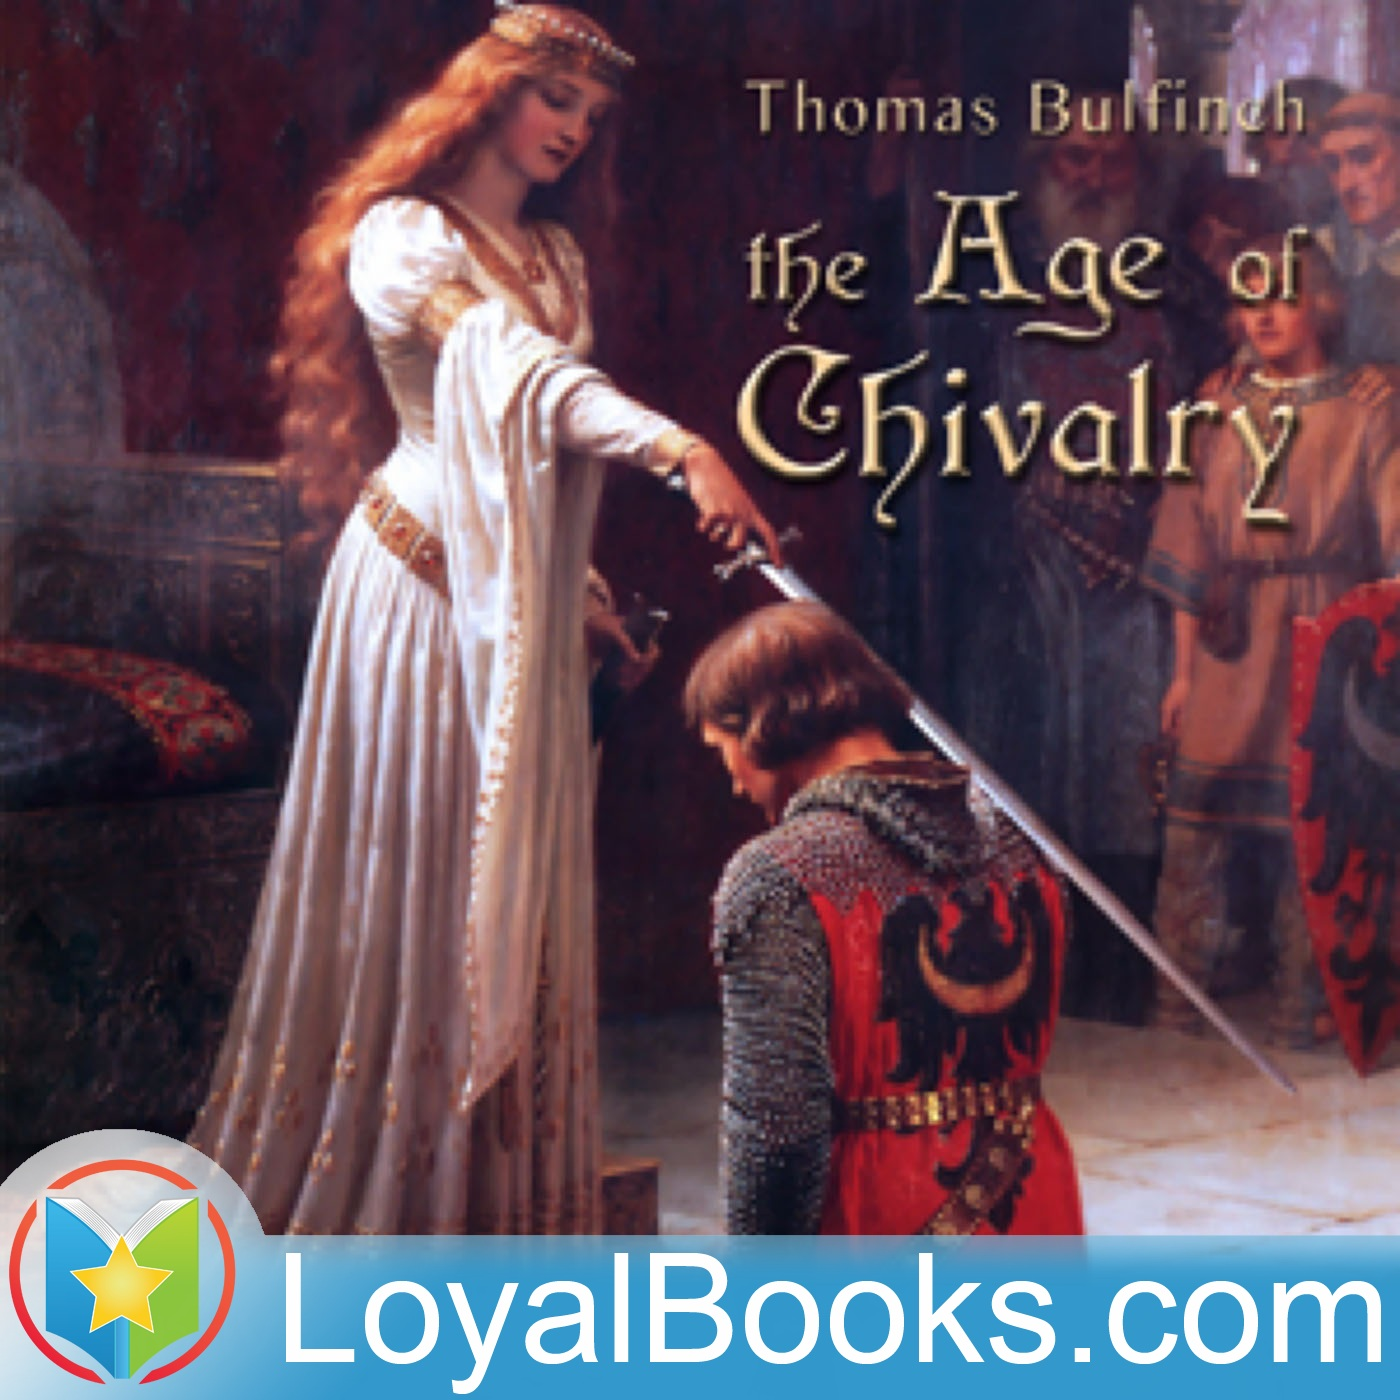 <![CDATA[The Age of Chivalry, or Legends of King Arthur by Thomas Bulfinch]]>